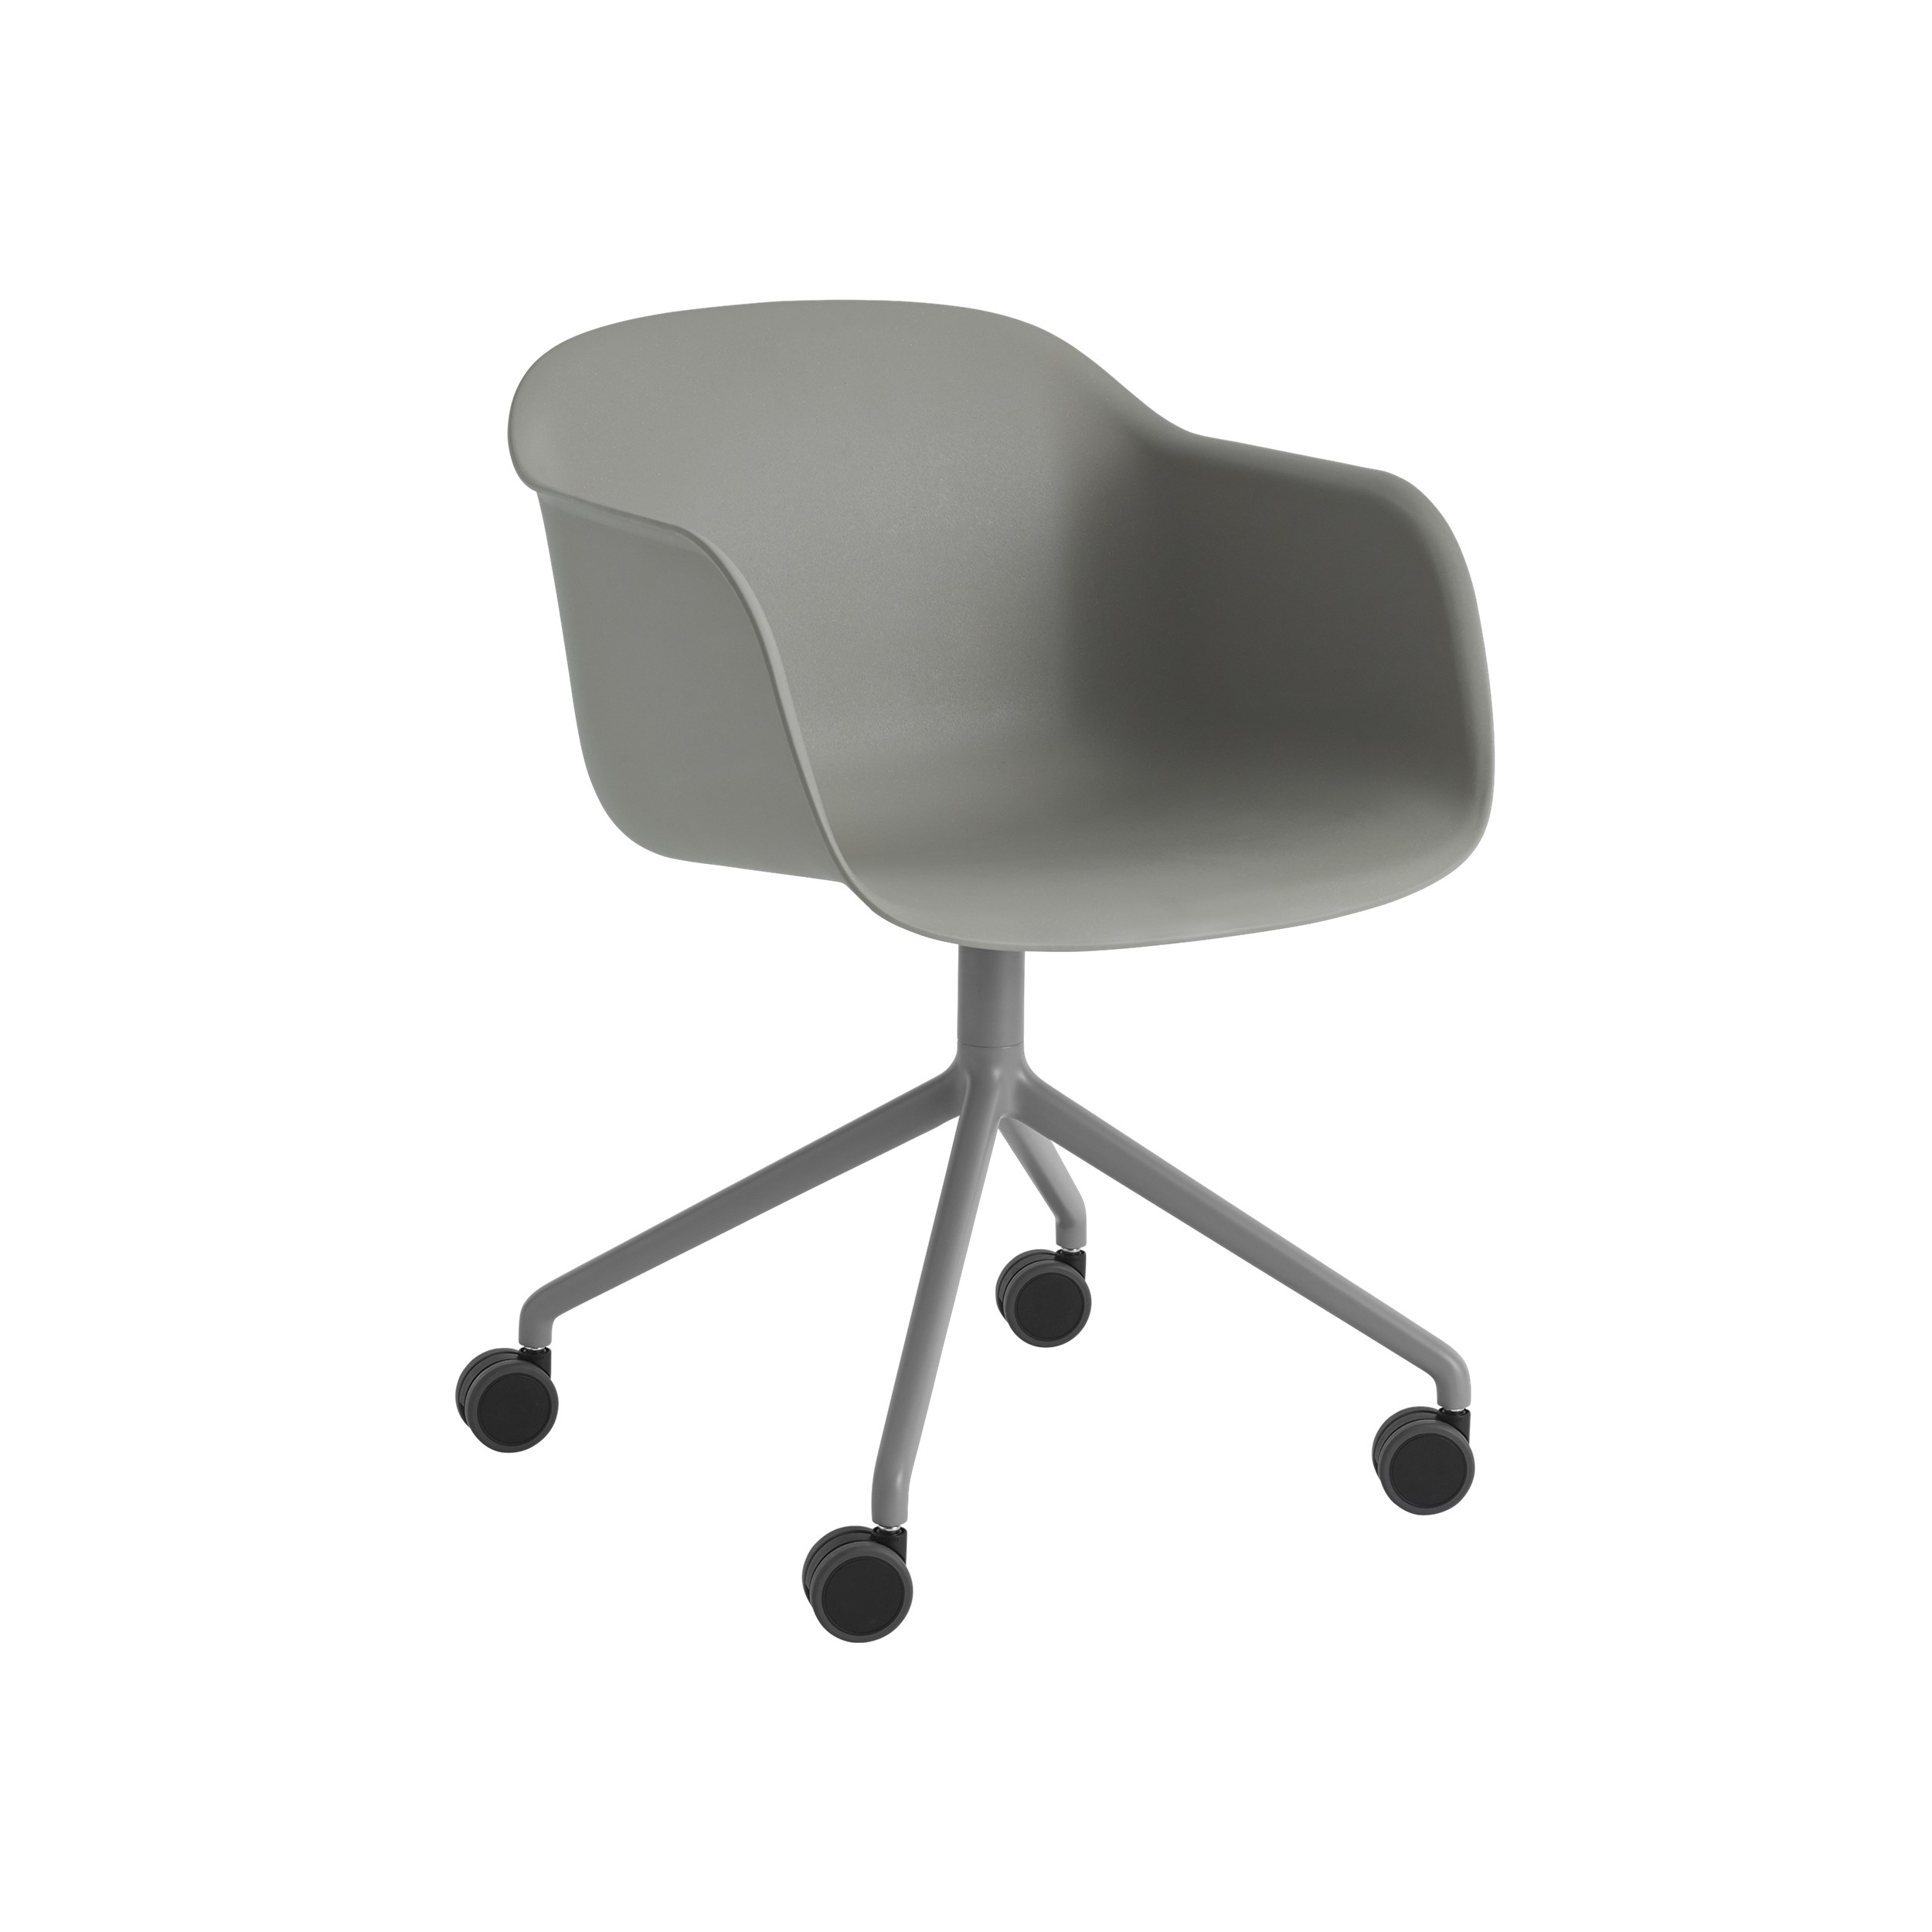 Fiber Swivel Shell Armchair with castors and gas lift